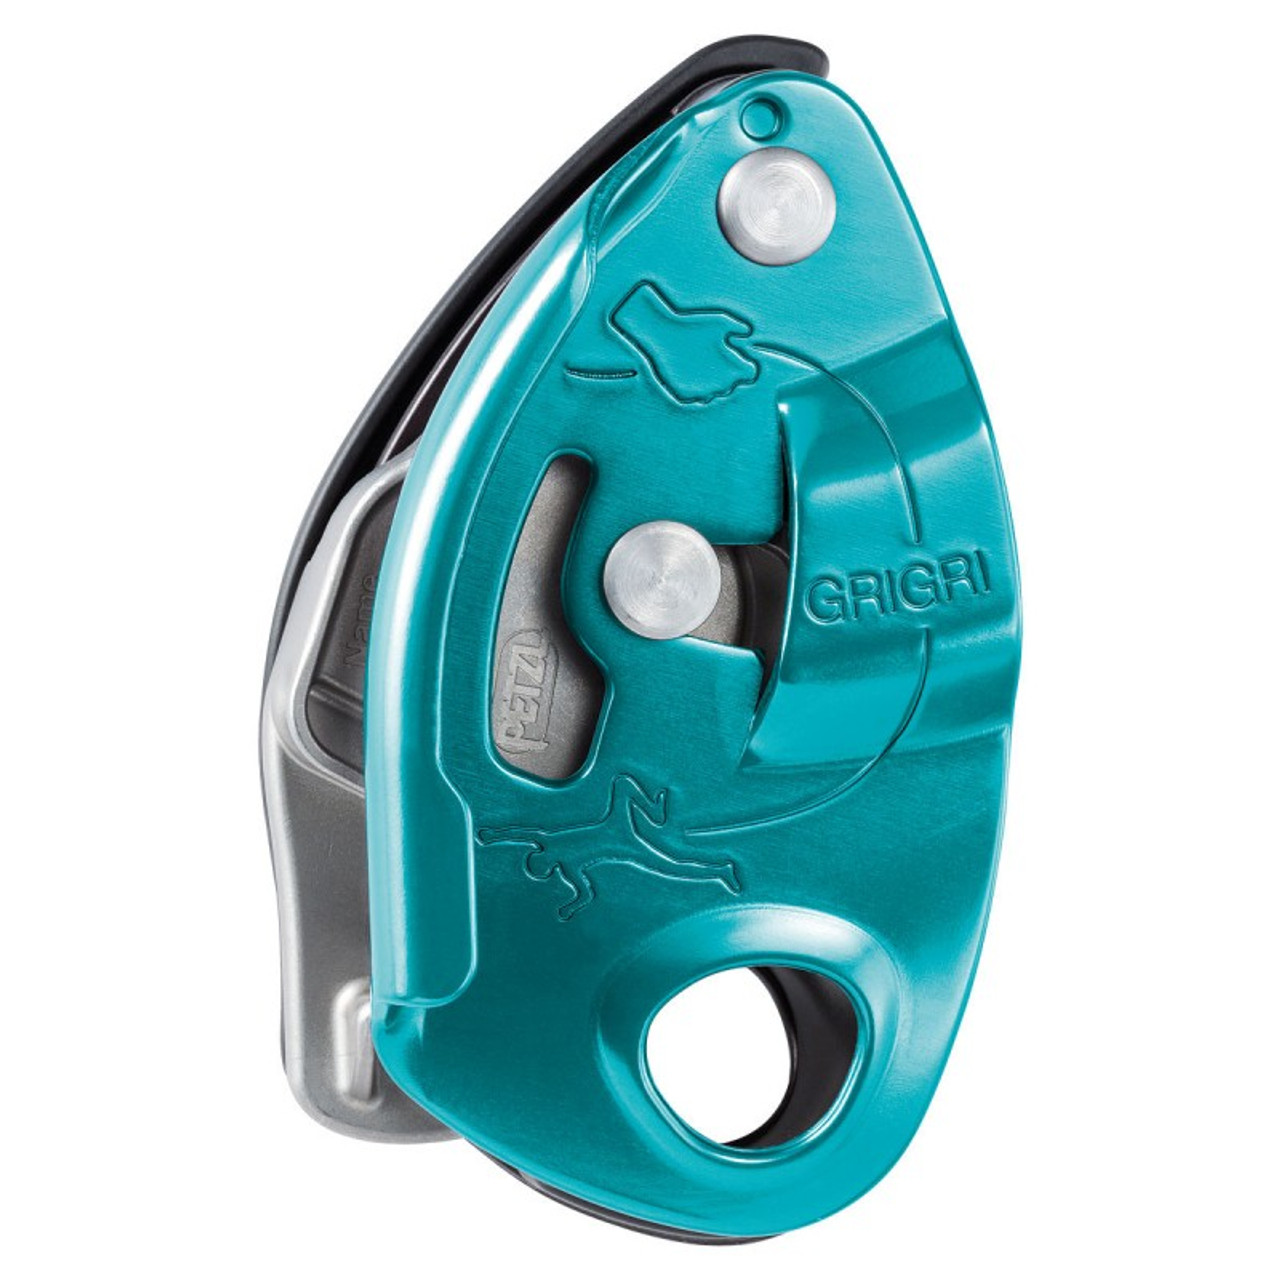 Petzl Grigri @ https://www.mountainmailorder.co.za/